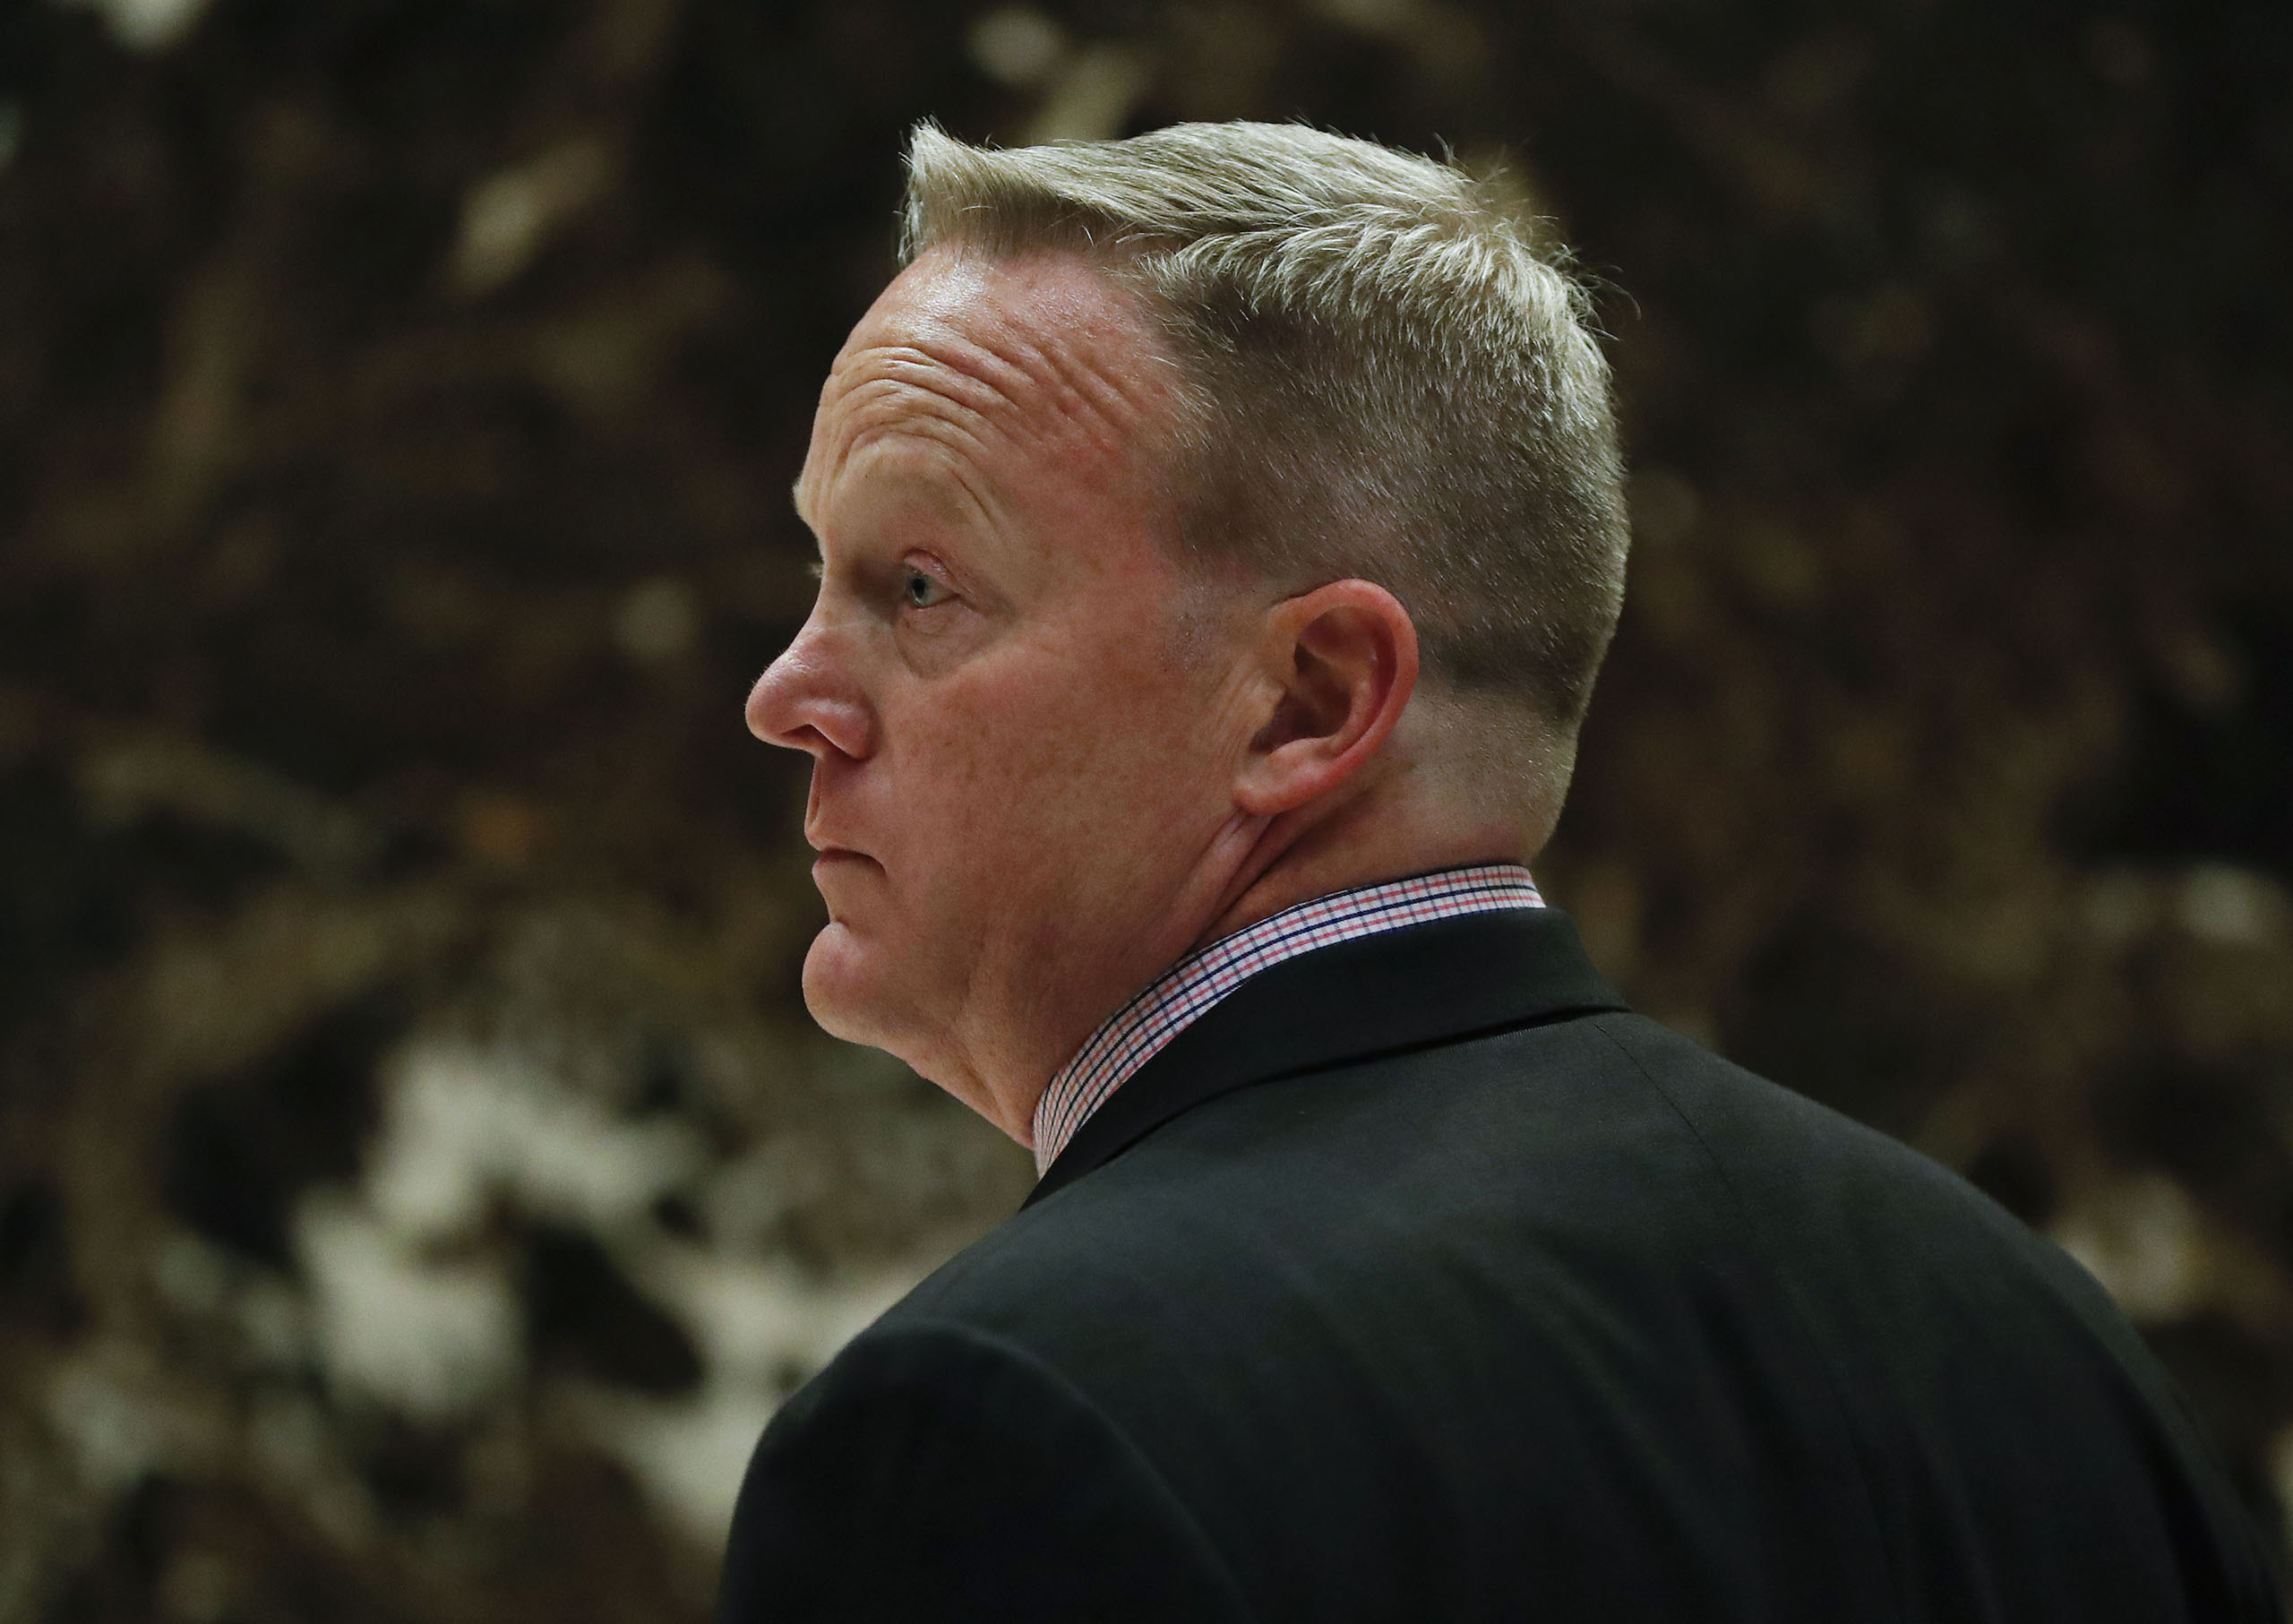 Sean Spicer, Republican National Committee communications director and chief strategist, waits for an elevator as he arrives at Trump Tower, in New York on Nov. 16, 2016.